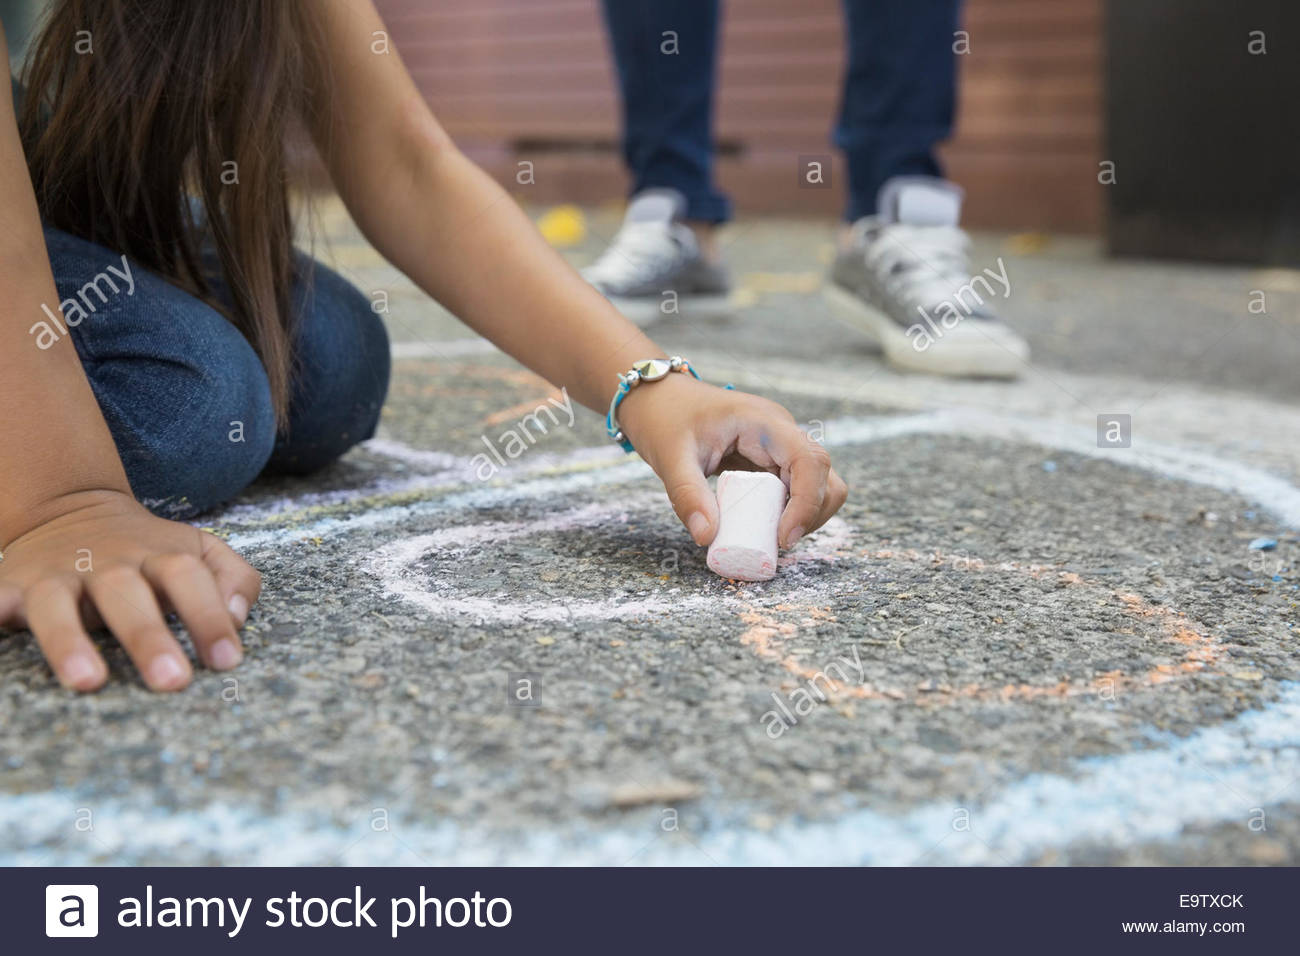 Girl drawing hopscotch number 8 with sidewalk chalk - Stock Image